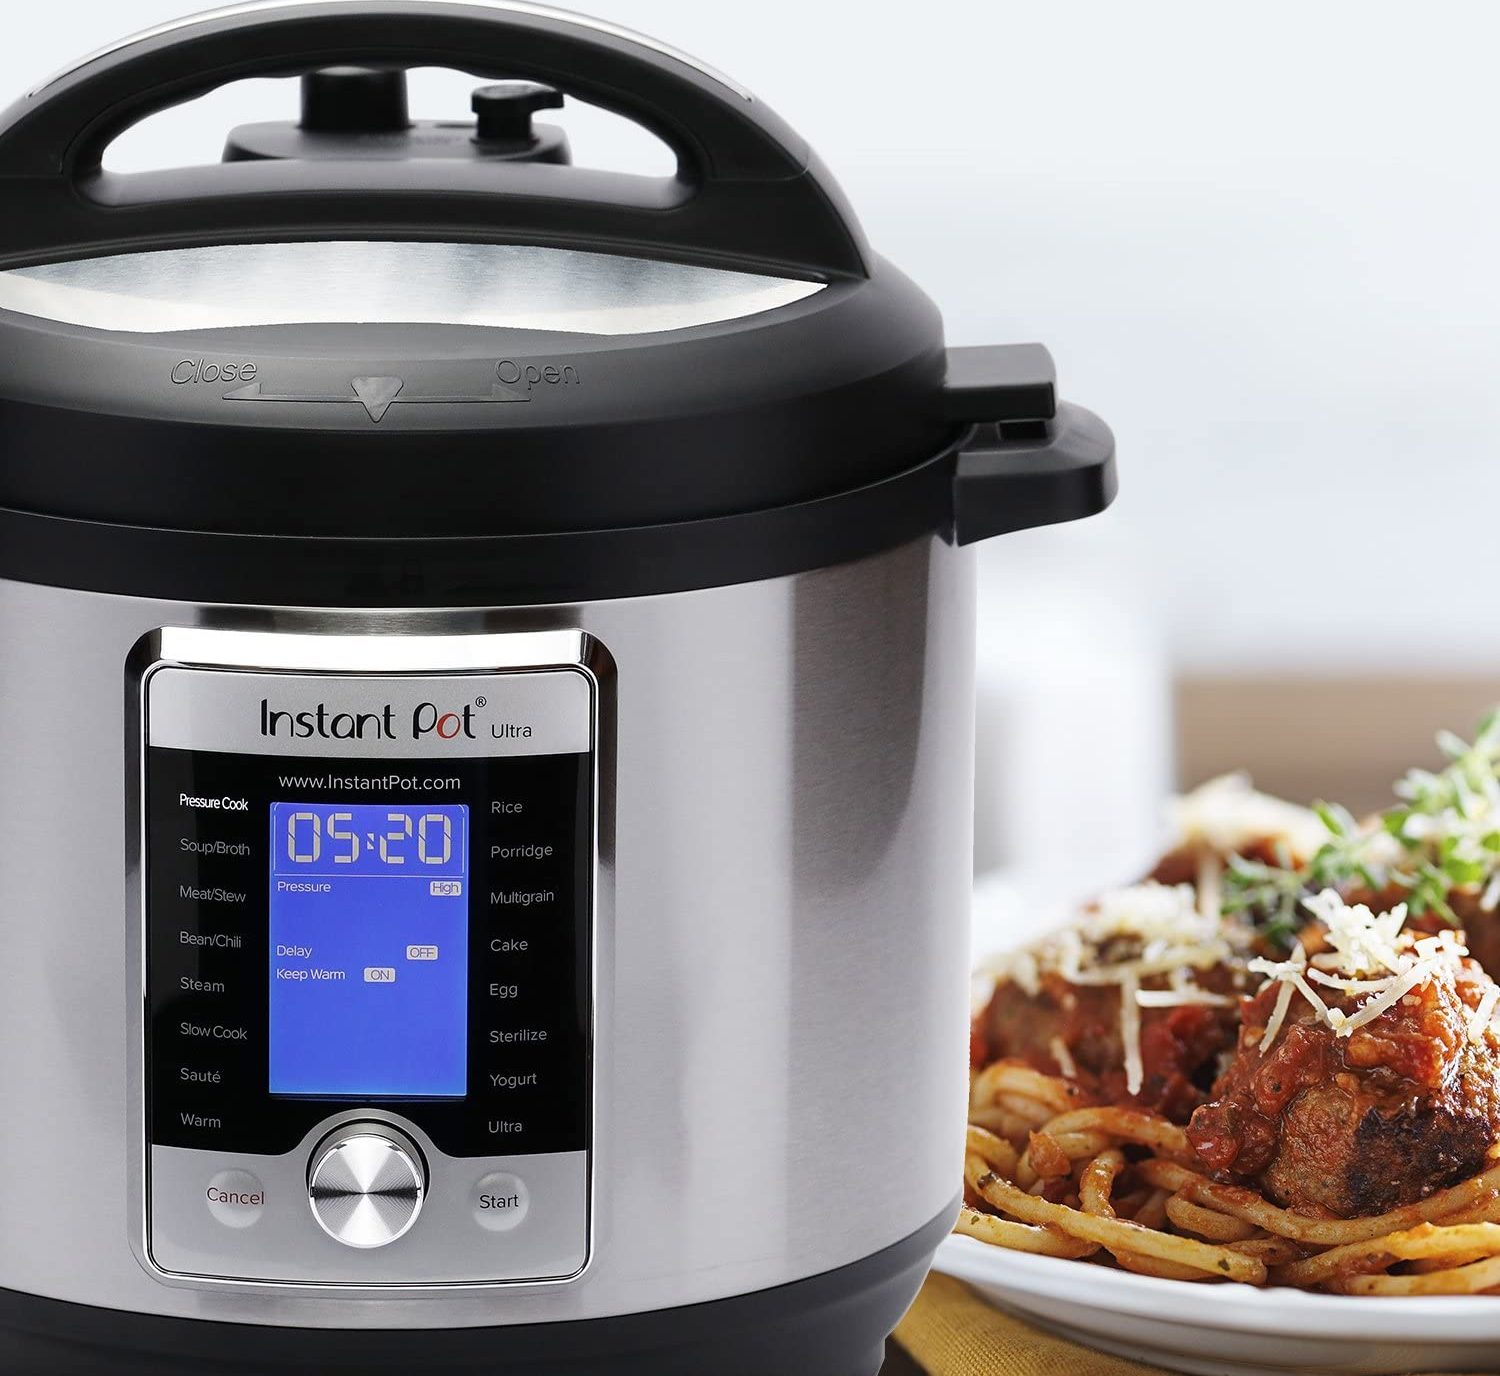 instant pot ultra next to a plate of food